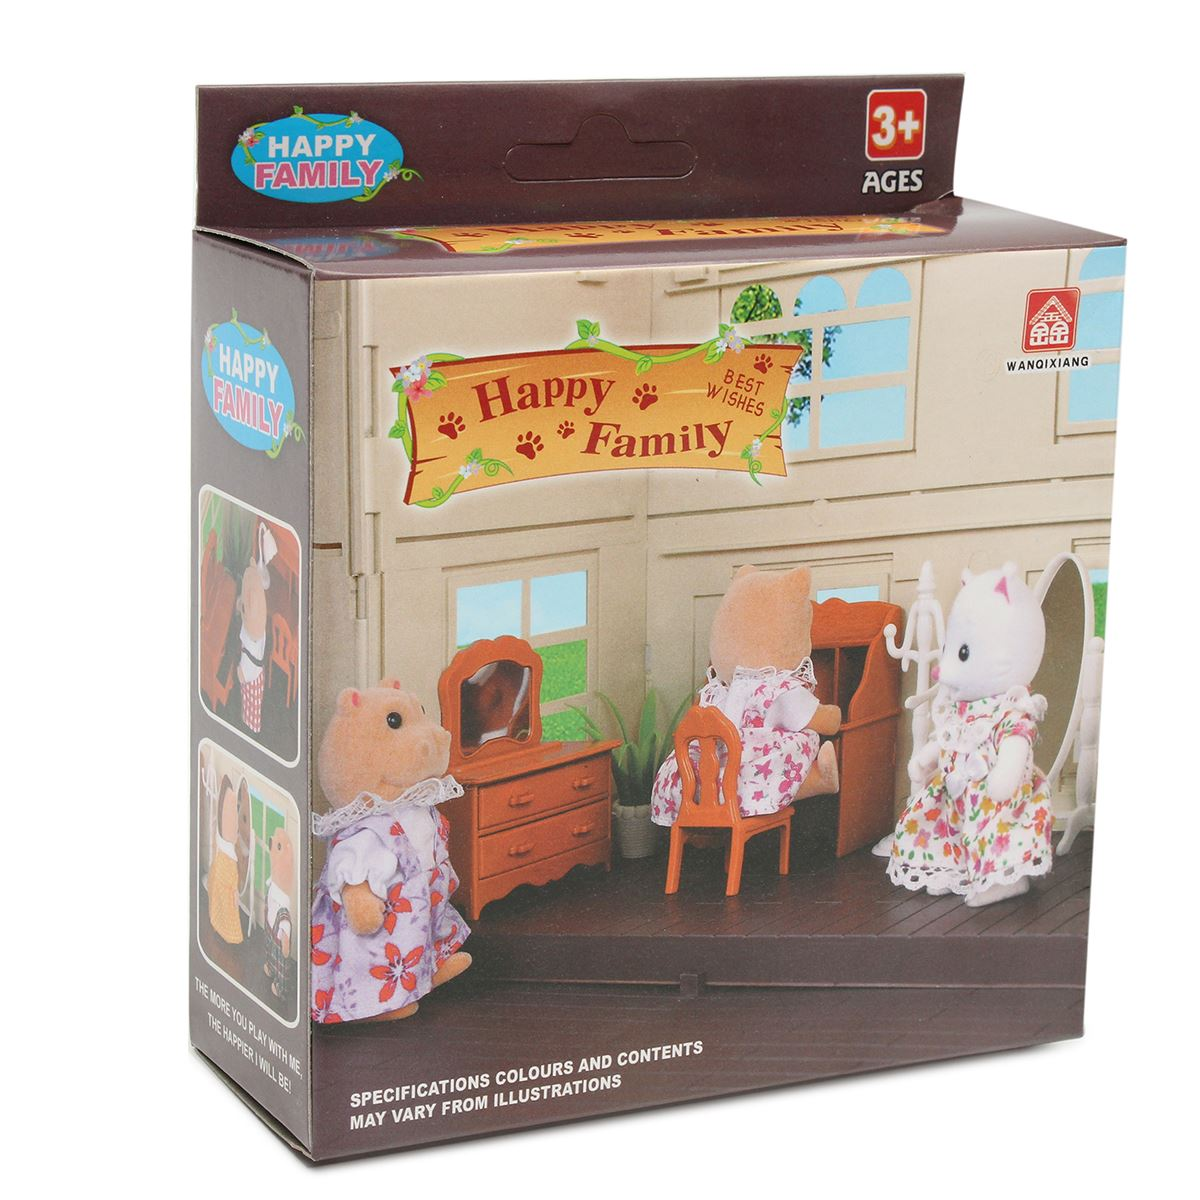 Miniature-Living-Room-Dressing-Table-Furniture-Sets-For-Mini-Children-DollHouse-Home-Decor-Kids-Toy-Doll-House-Toys-Gift-5